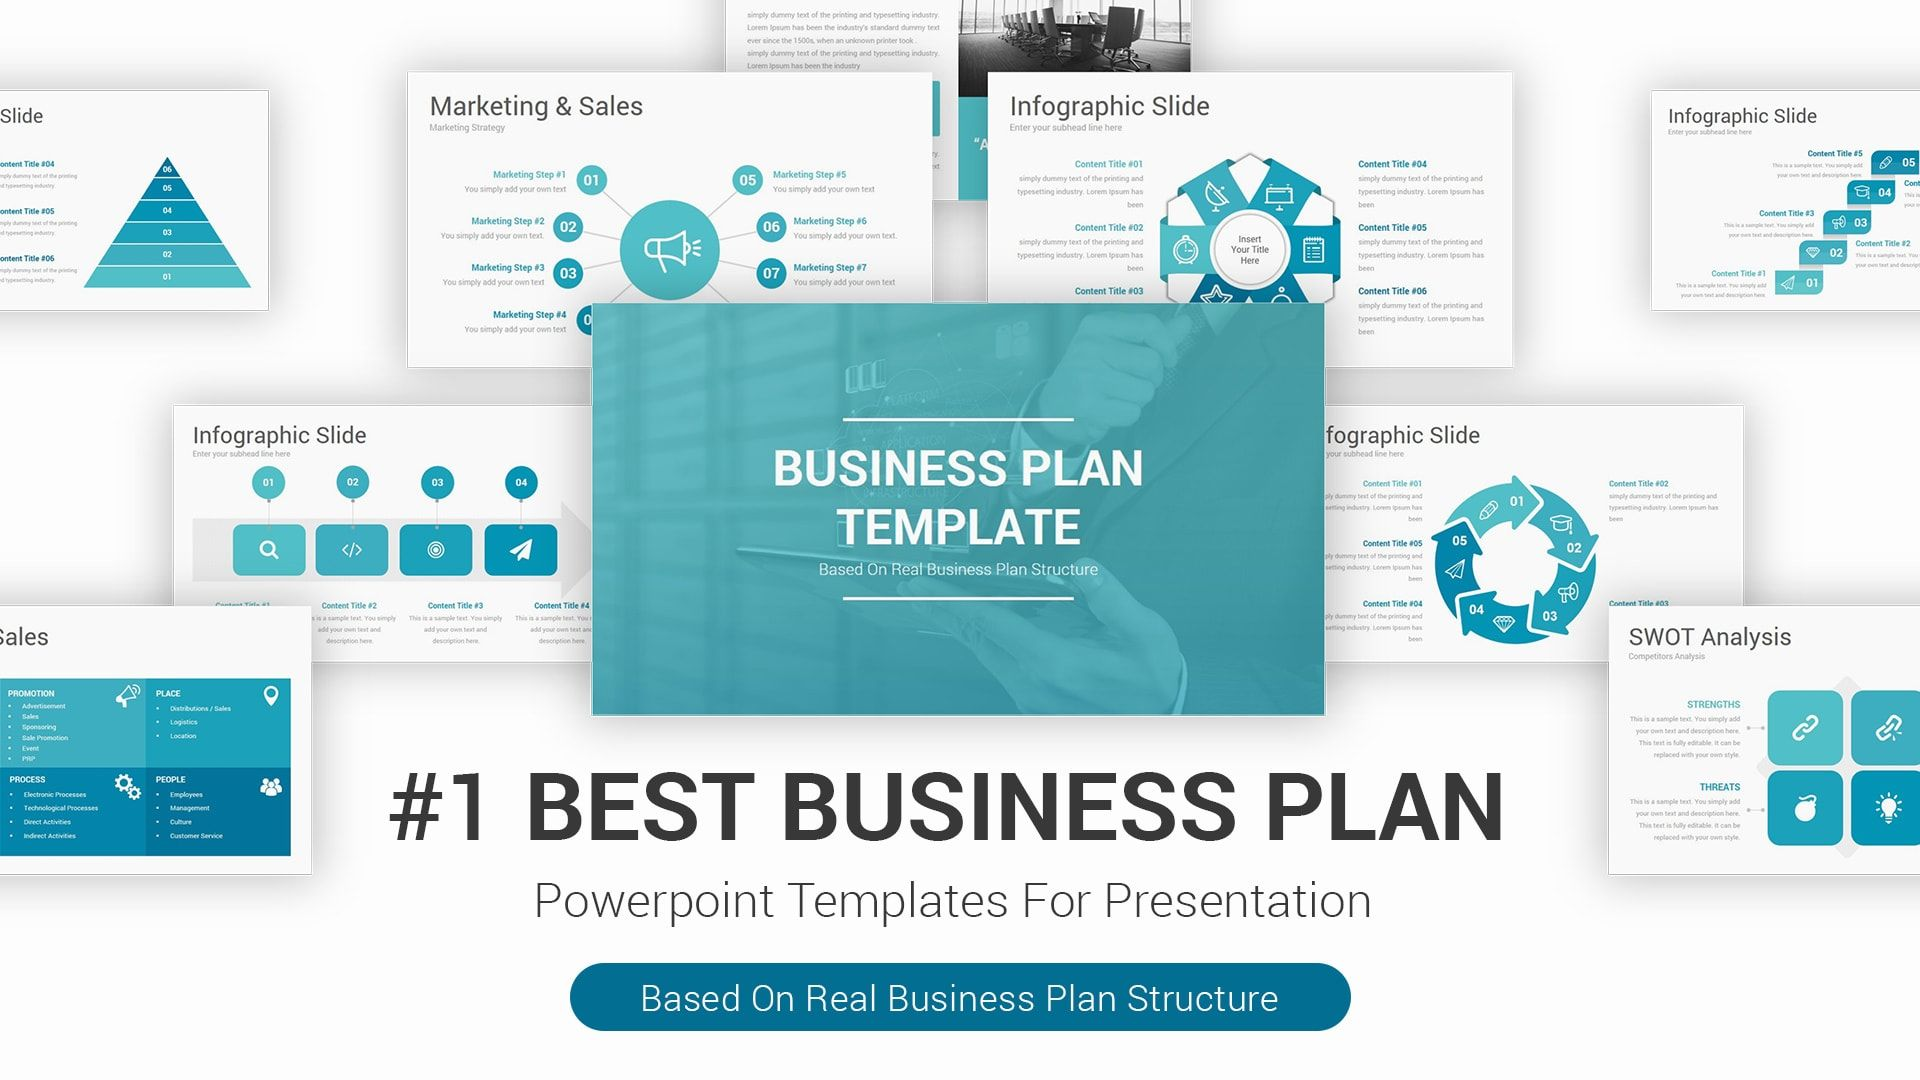 Best Free Presentation Templates Professional Designs 2020 With Ppt Templates In 2020 Free Powerpoint Presentations Powerpoint Template Free Presentation Template Free